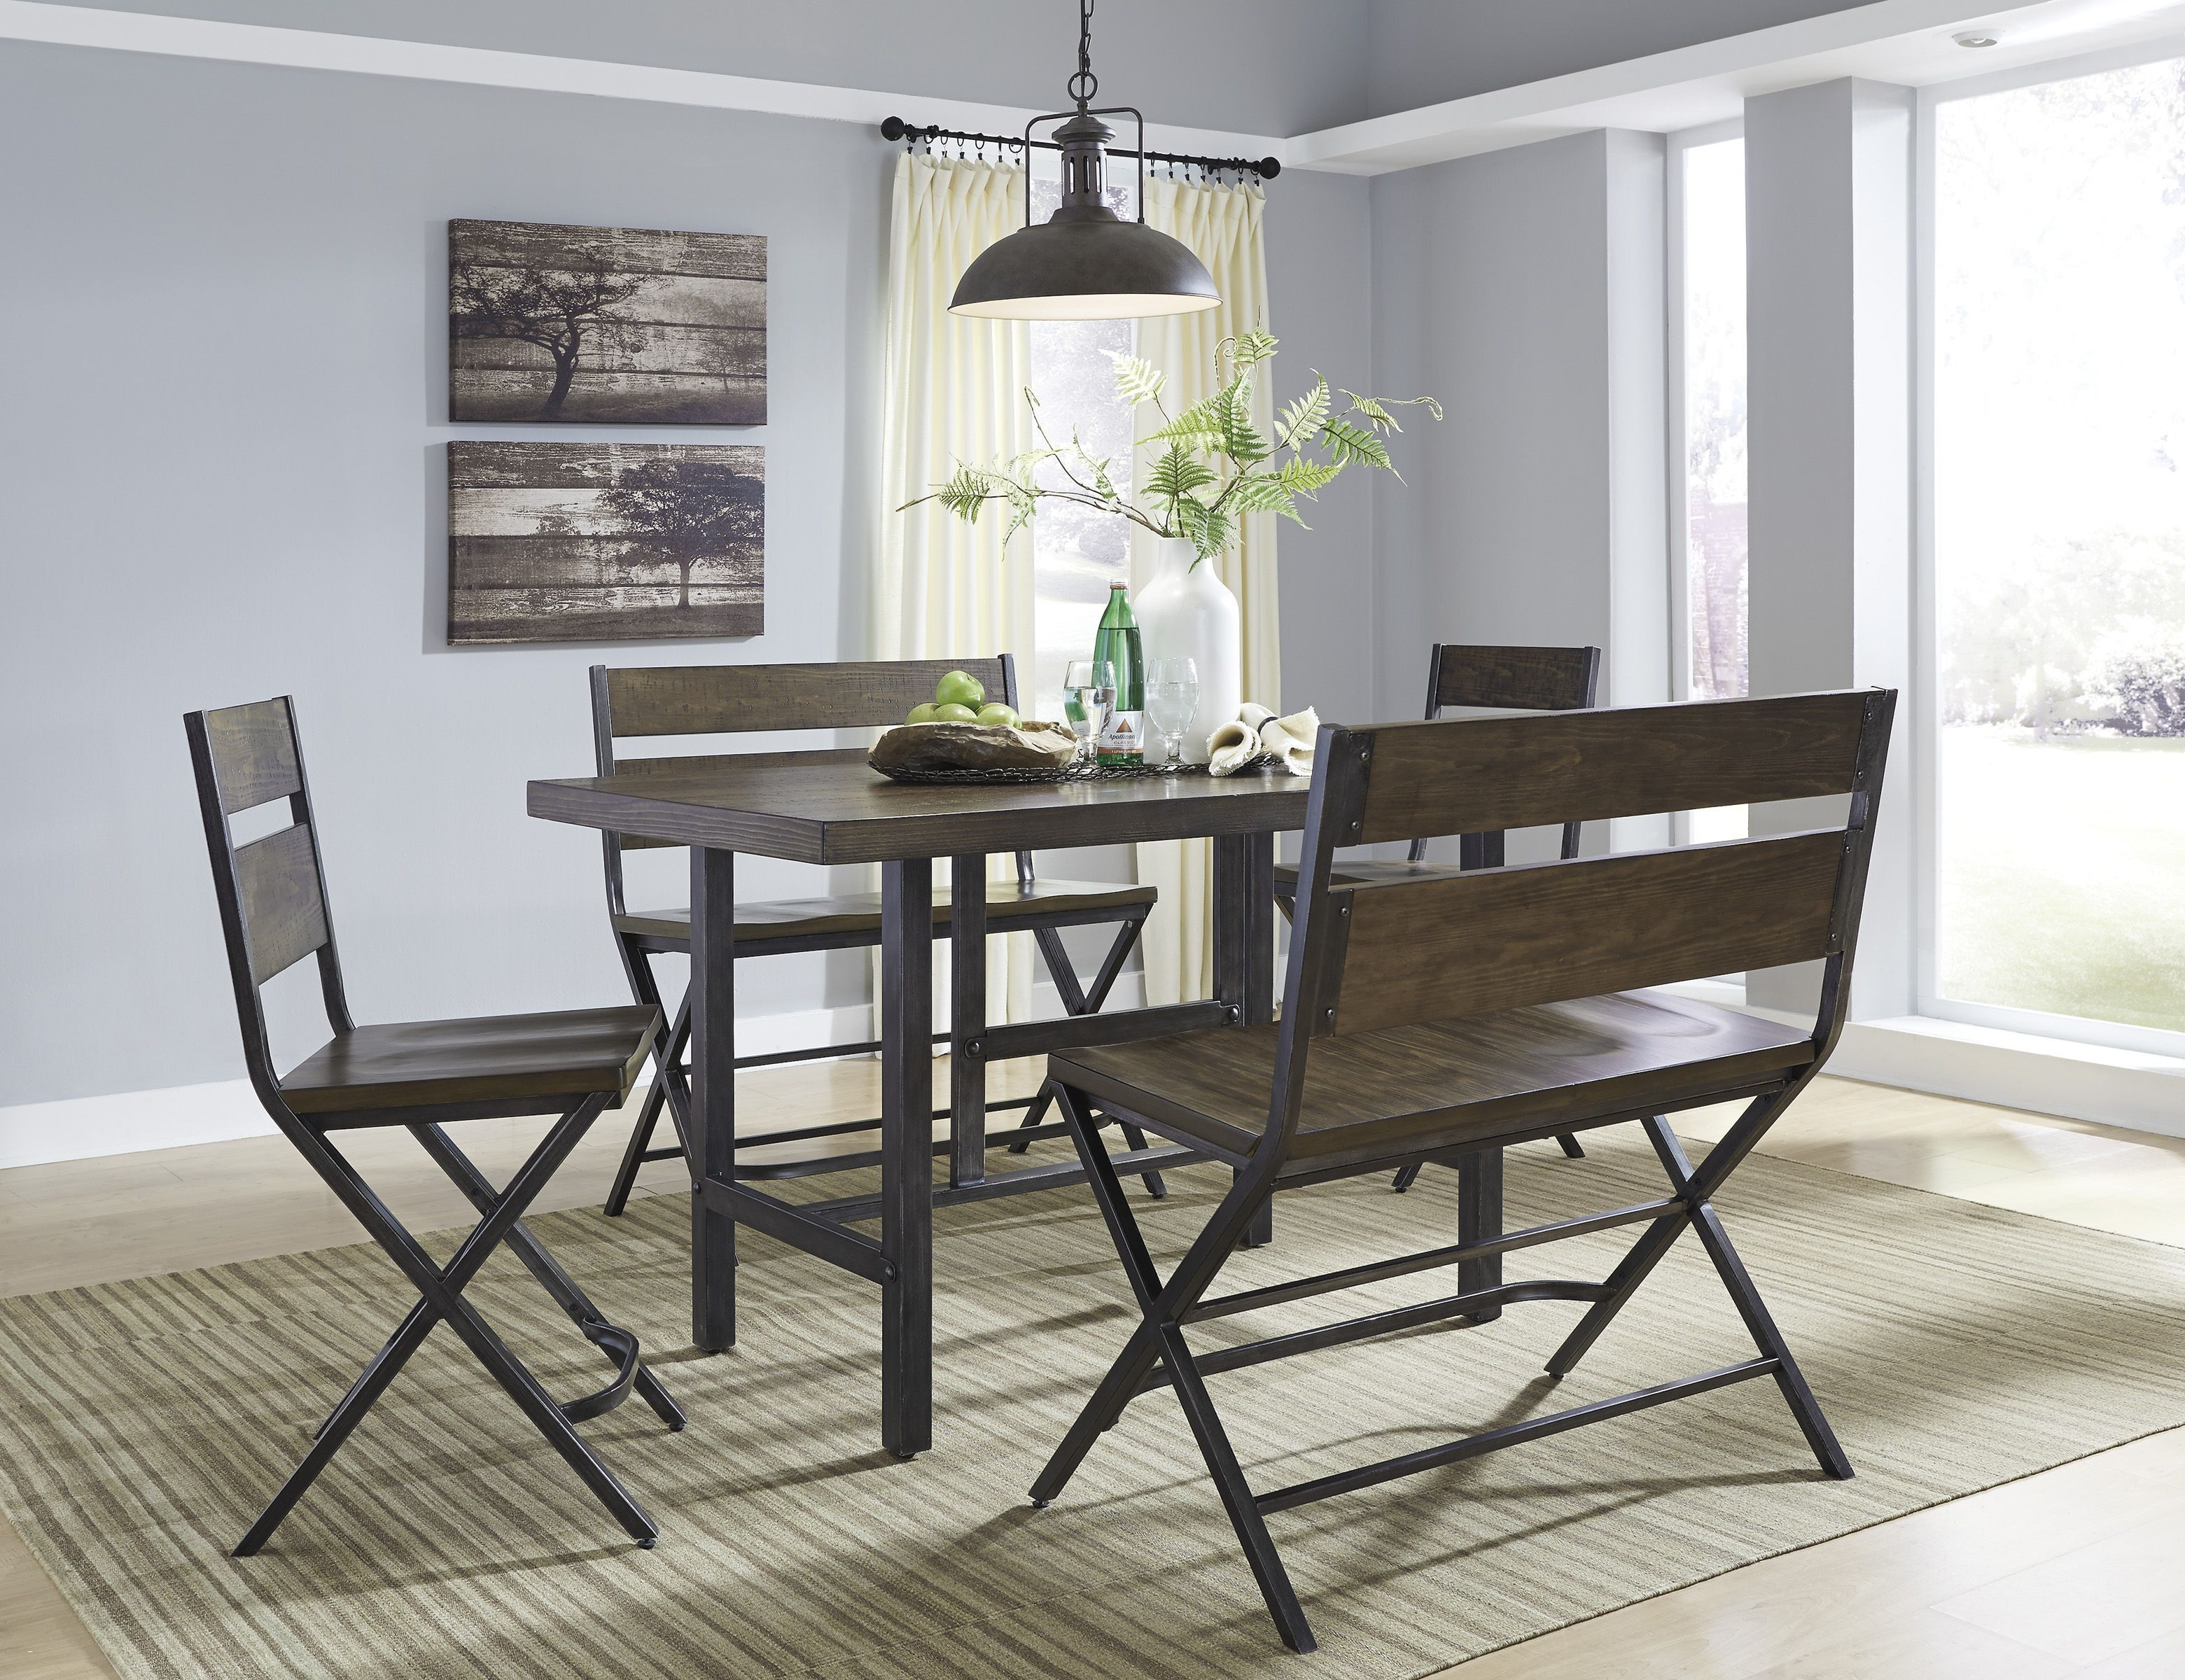 New Dining Room Design Schemes  July, 2018